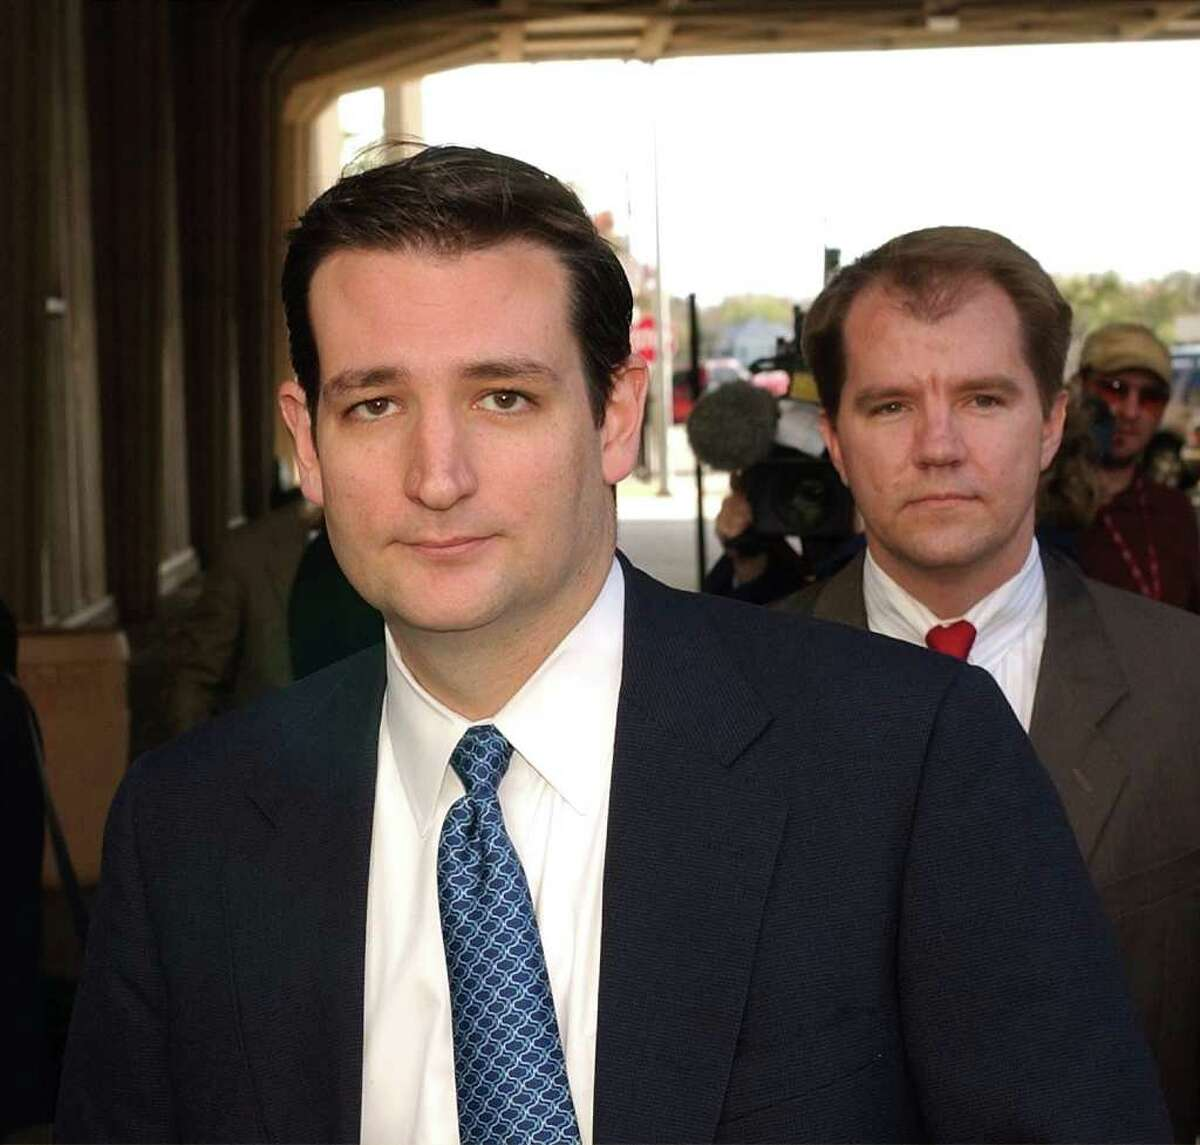 Texas Solicitor General R. Ted Cruz, left, and Don. R. Willett, right, leave the federal courthouse after a pre-trial hearing on Tuesday, Dec. 9, 2003, in Austin, Texas. Lawyers and federal judges met earlier to plan for the upcoming redistricting trial. Willett is deputy Attorney General for Legal Counsel. (AP Photo/Harry Cabluck). Used as mug. HOUCHRON CAPTION (06/27/2005 -2 - STAR) SECMETRO COLORFRONT : TED CRUZ, solicitor general, will ask justices to defer to lawmakers in upcoming argument.